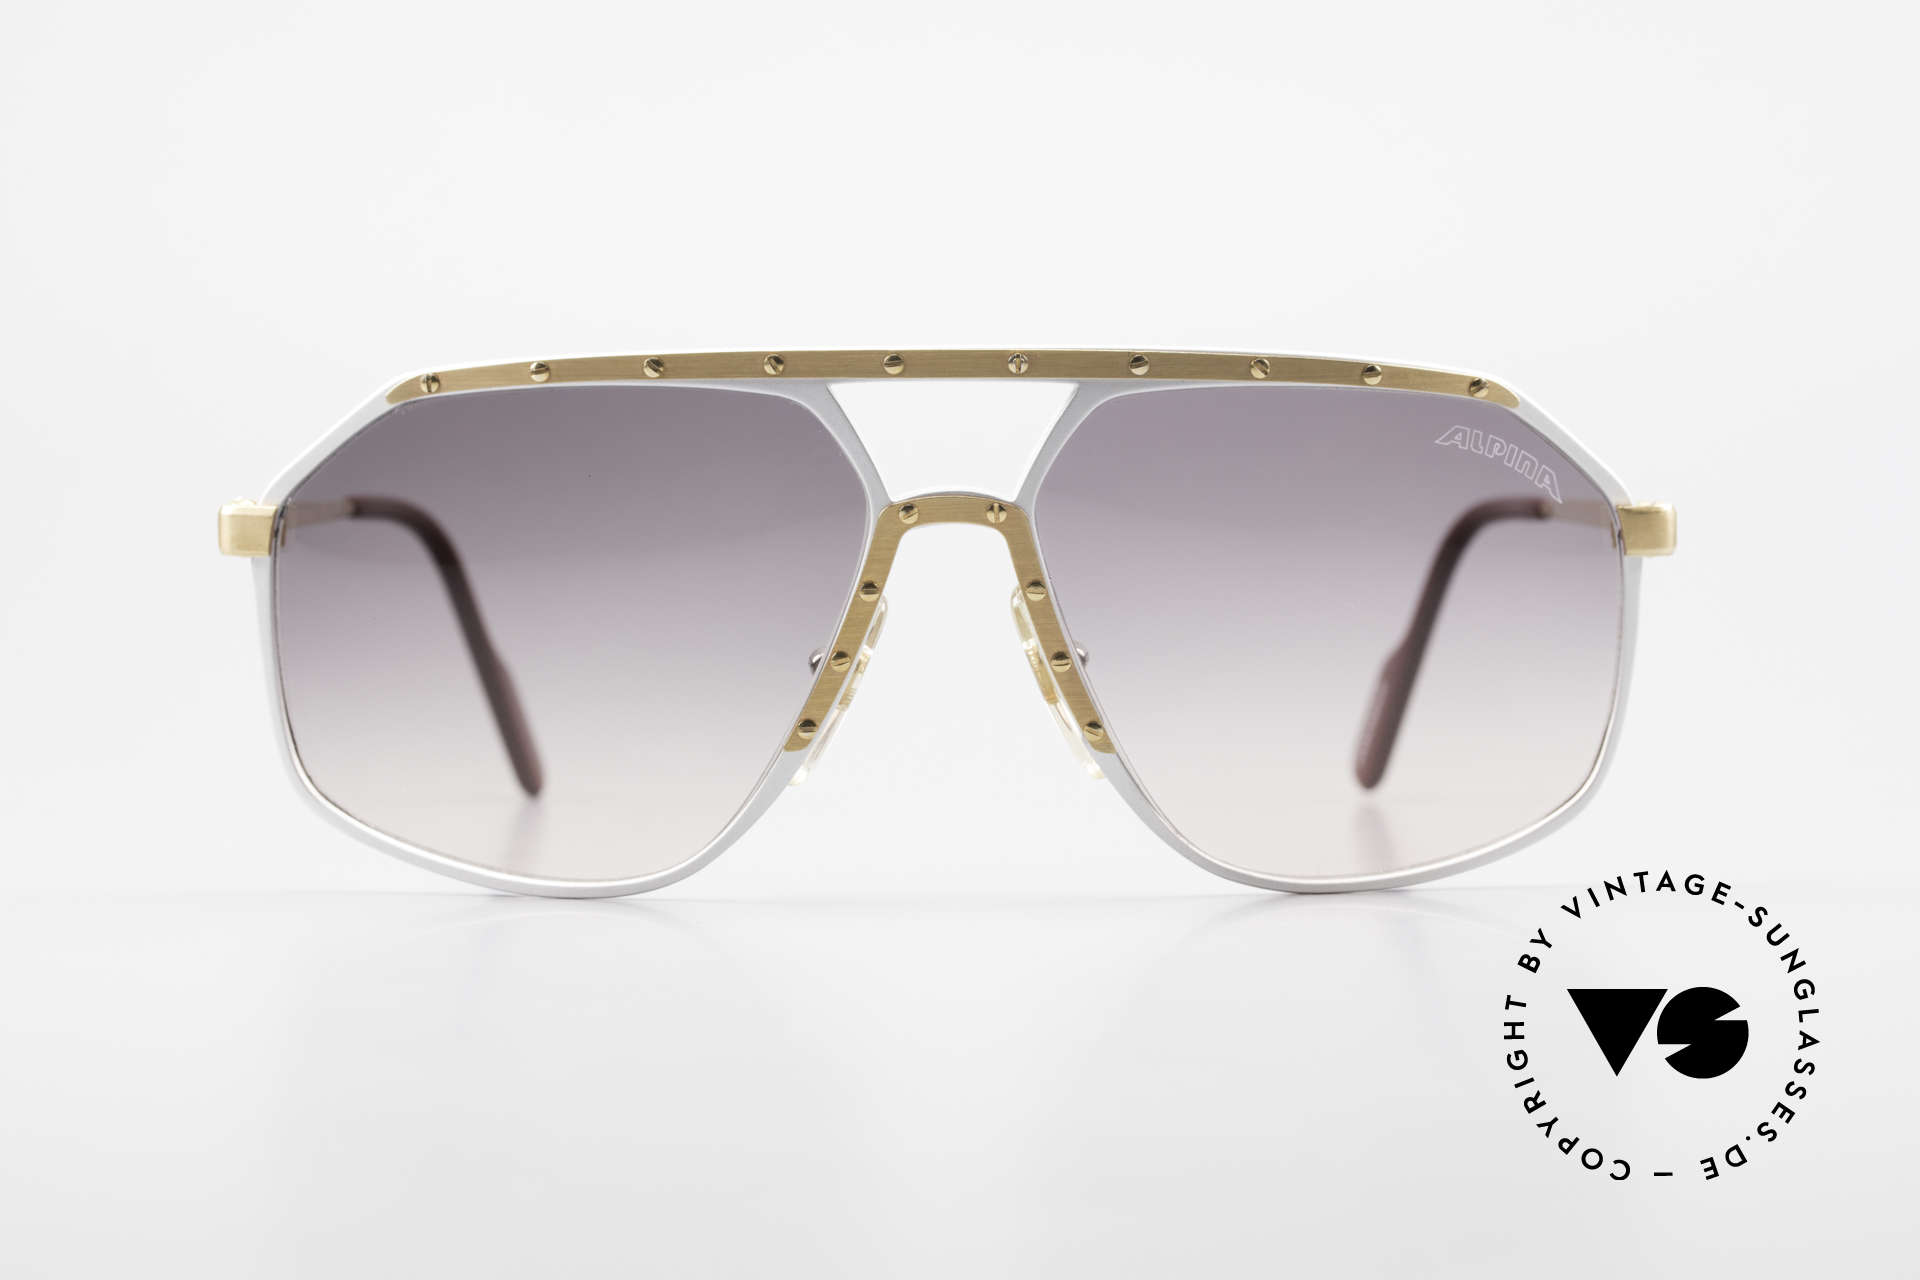 Alpina M6 Vintage Glasses Par Excellence, made from 1987 to 1991 (West Germany sunglasses), Made for Men and Women